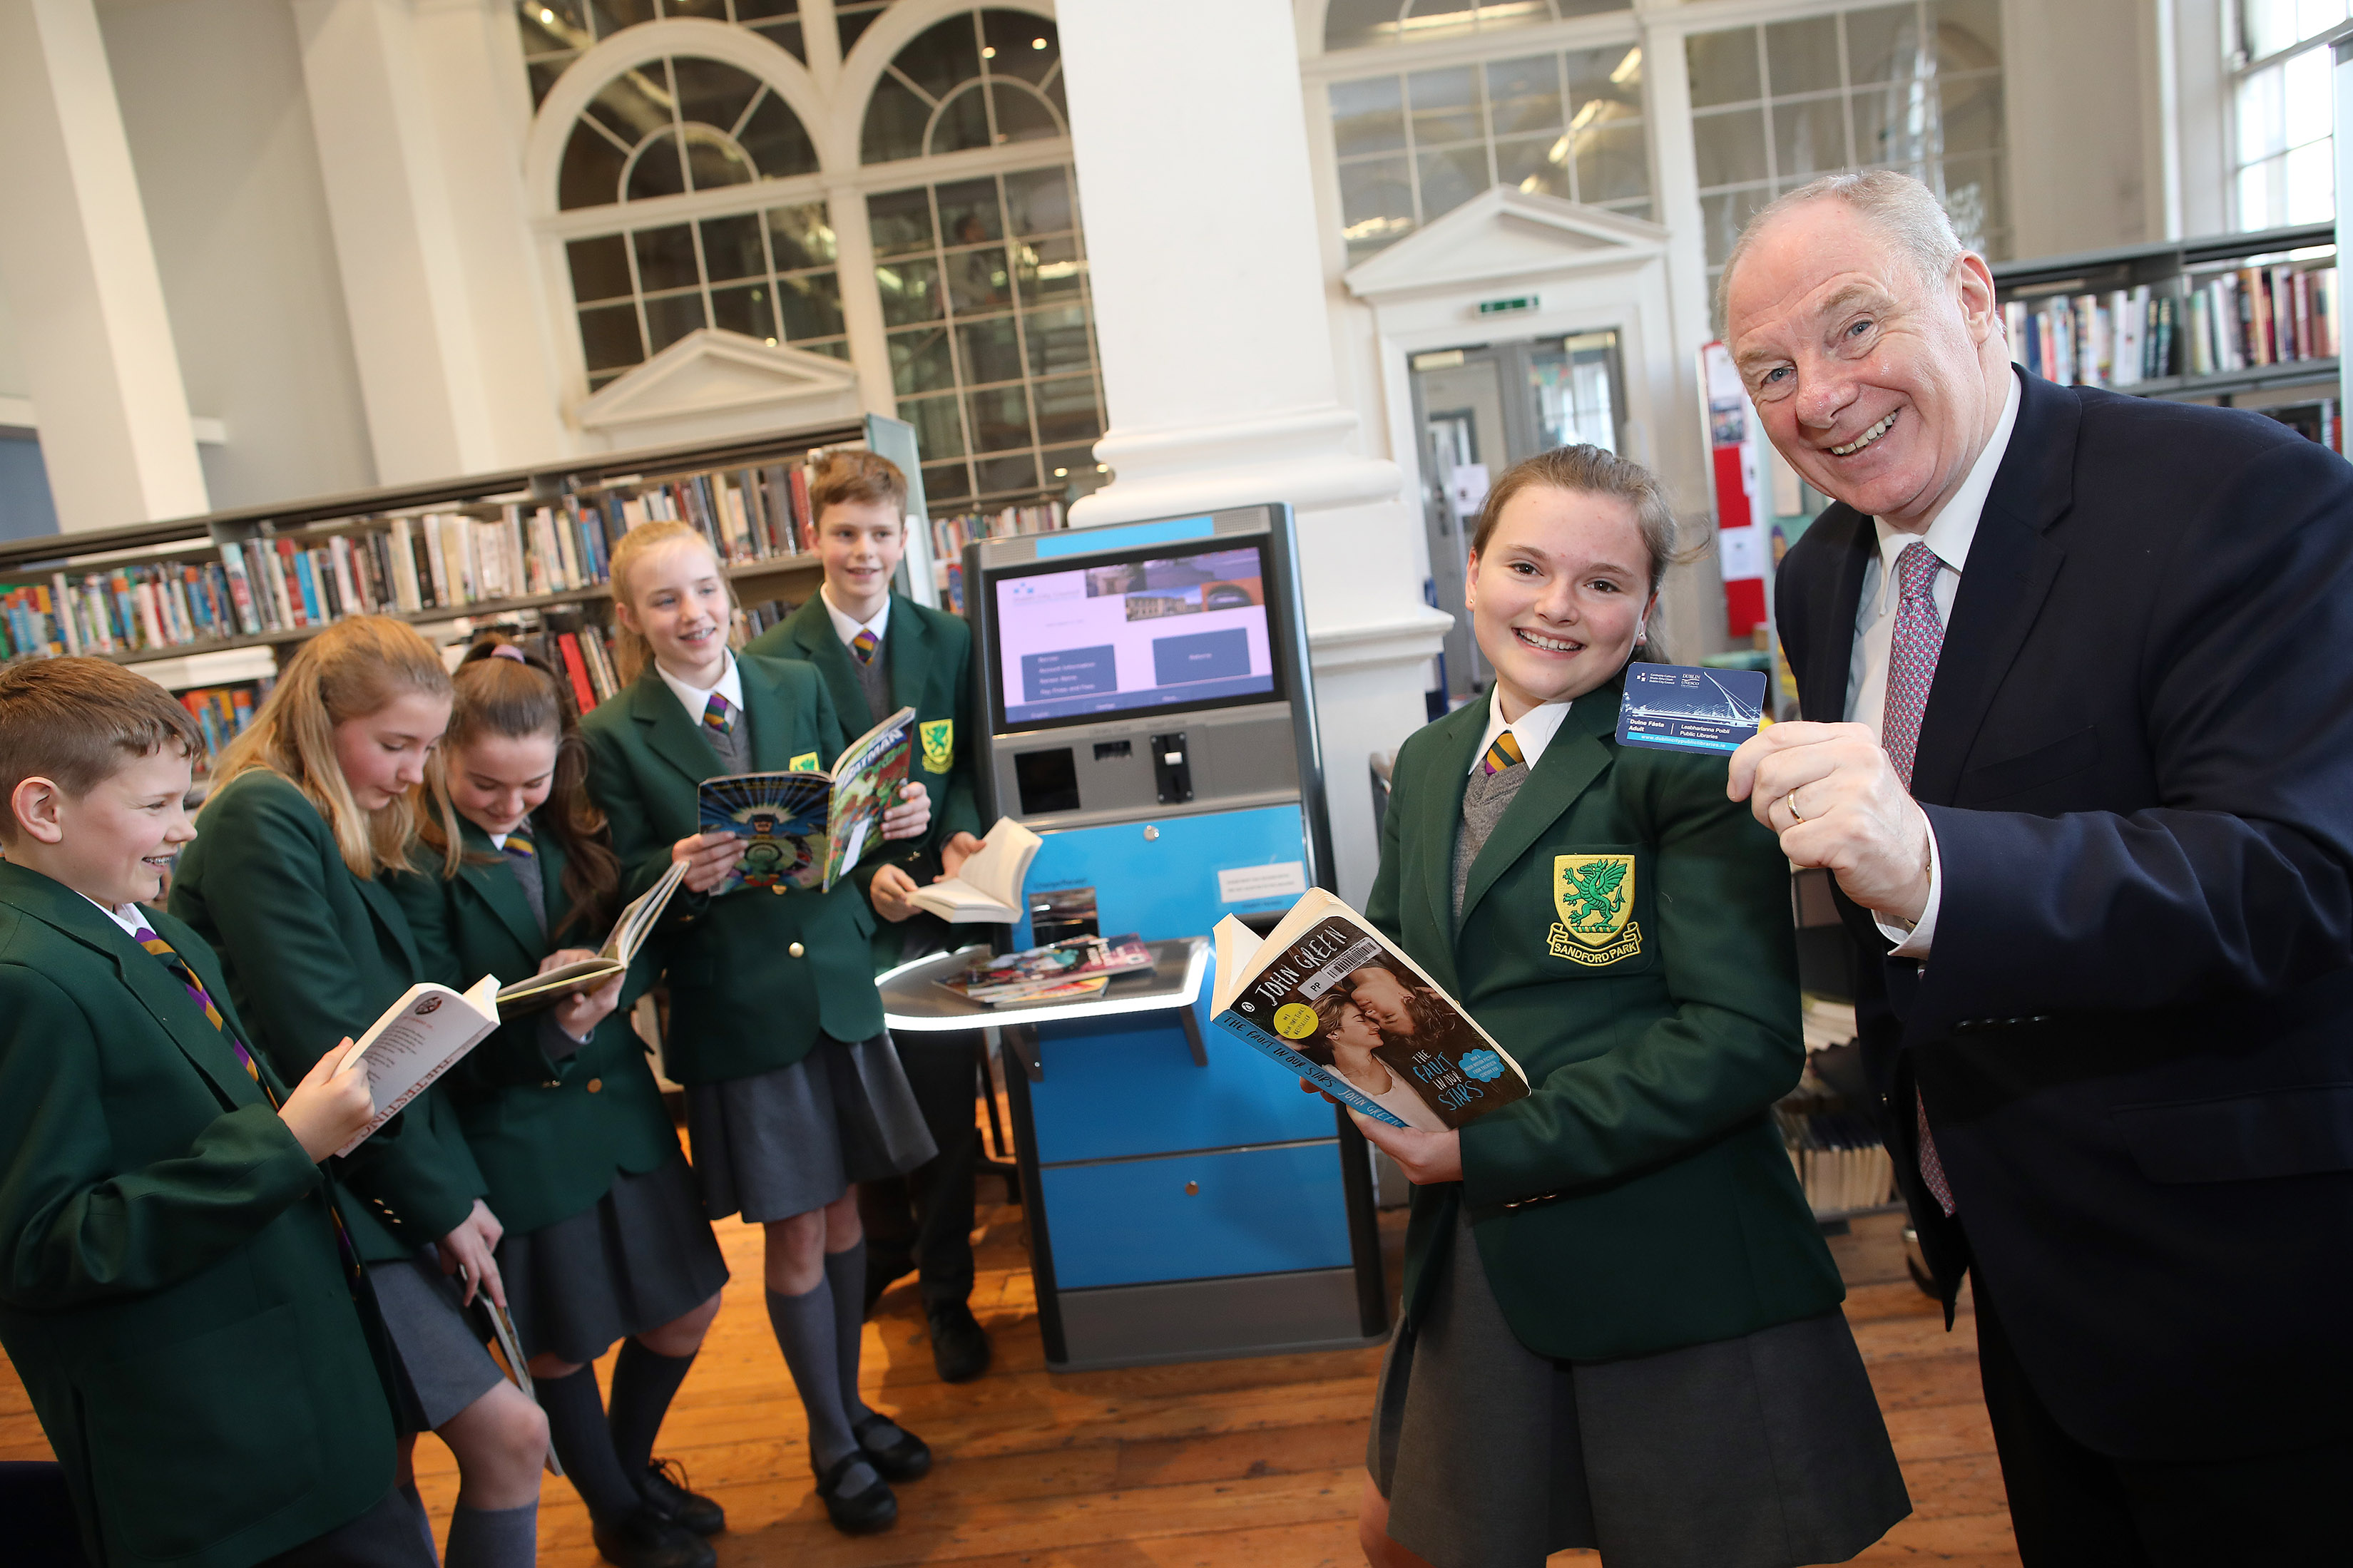 Press release - Offaly Libraries